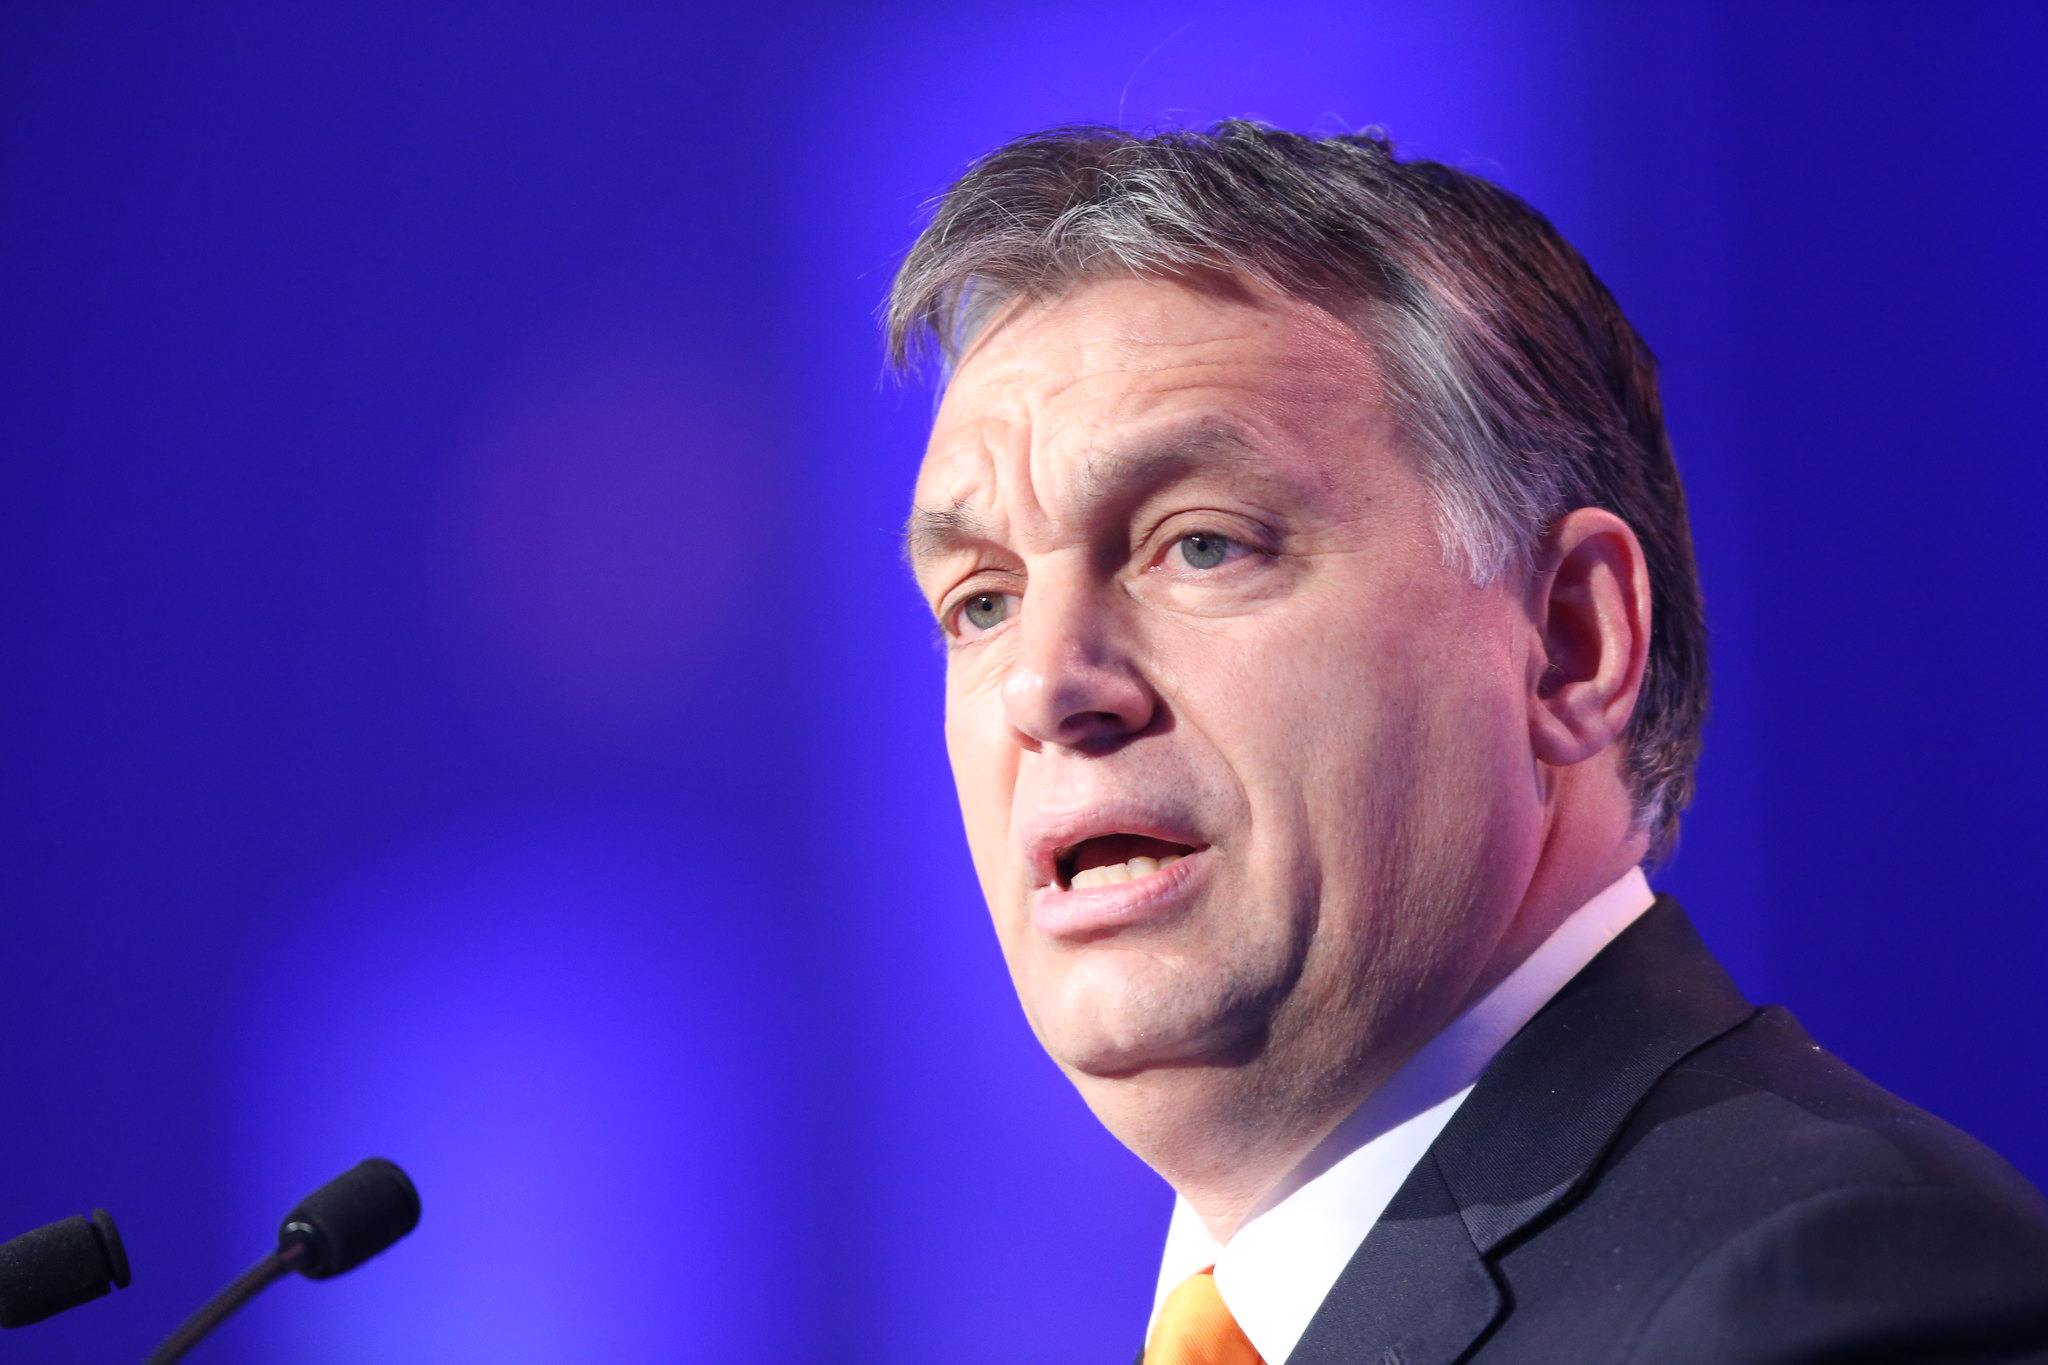 匈牙利總理奧班(Viktor Orban)(圖/European People's Party/CC BY 2.0)